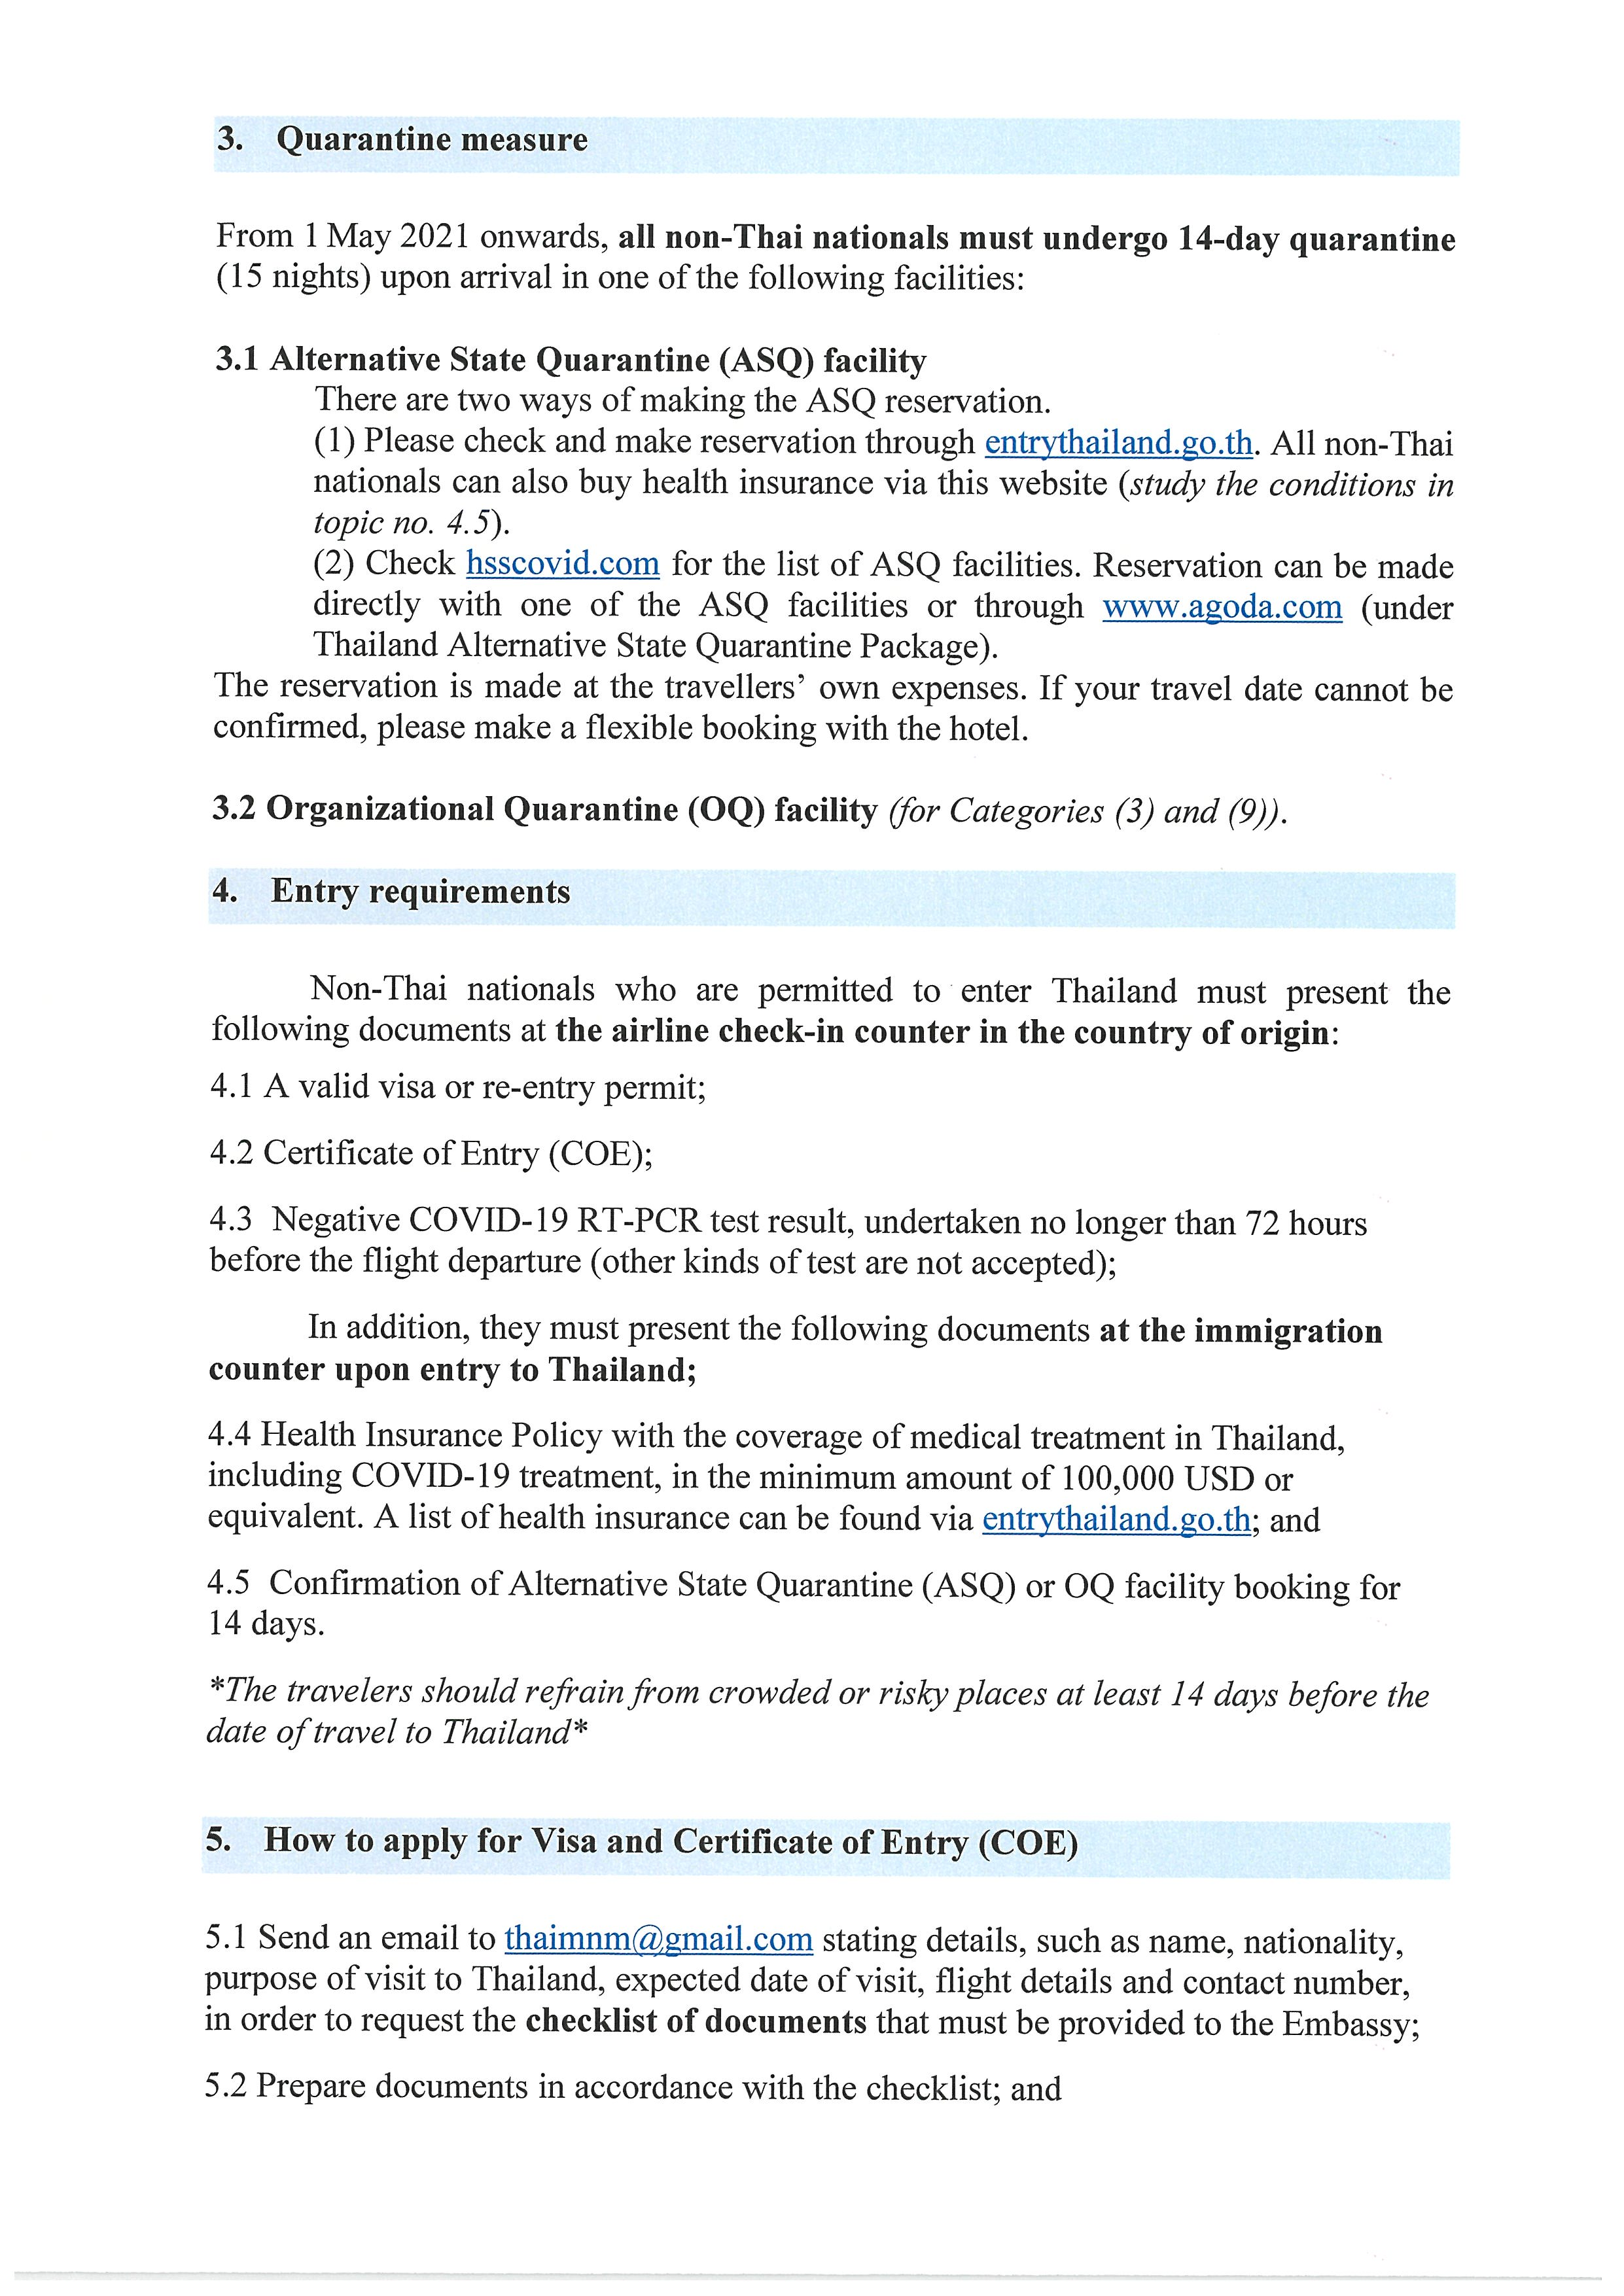 Announcement_-_Updated_Regulations_on_Entry_to_Thailand_for_Non-Thai_Nationals-03_May_-3